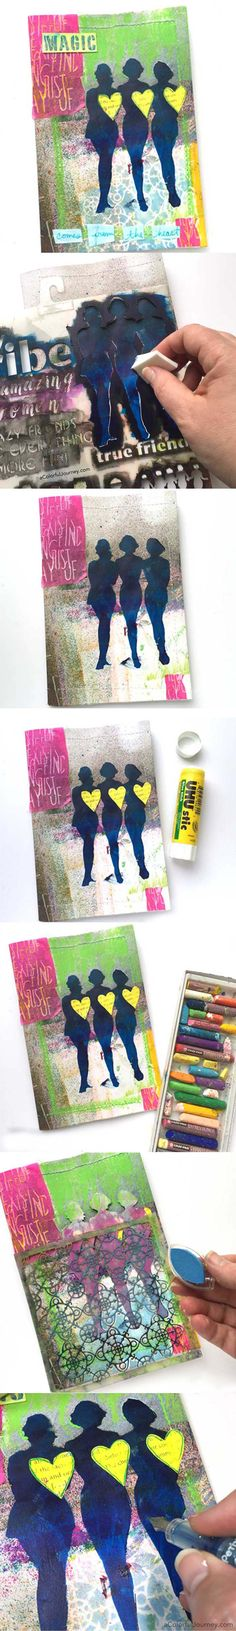 Art journaling with stencils and masks by Carolyn Dube with StencilGirl Stencils